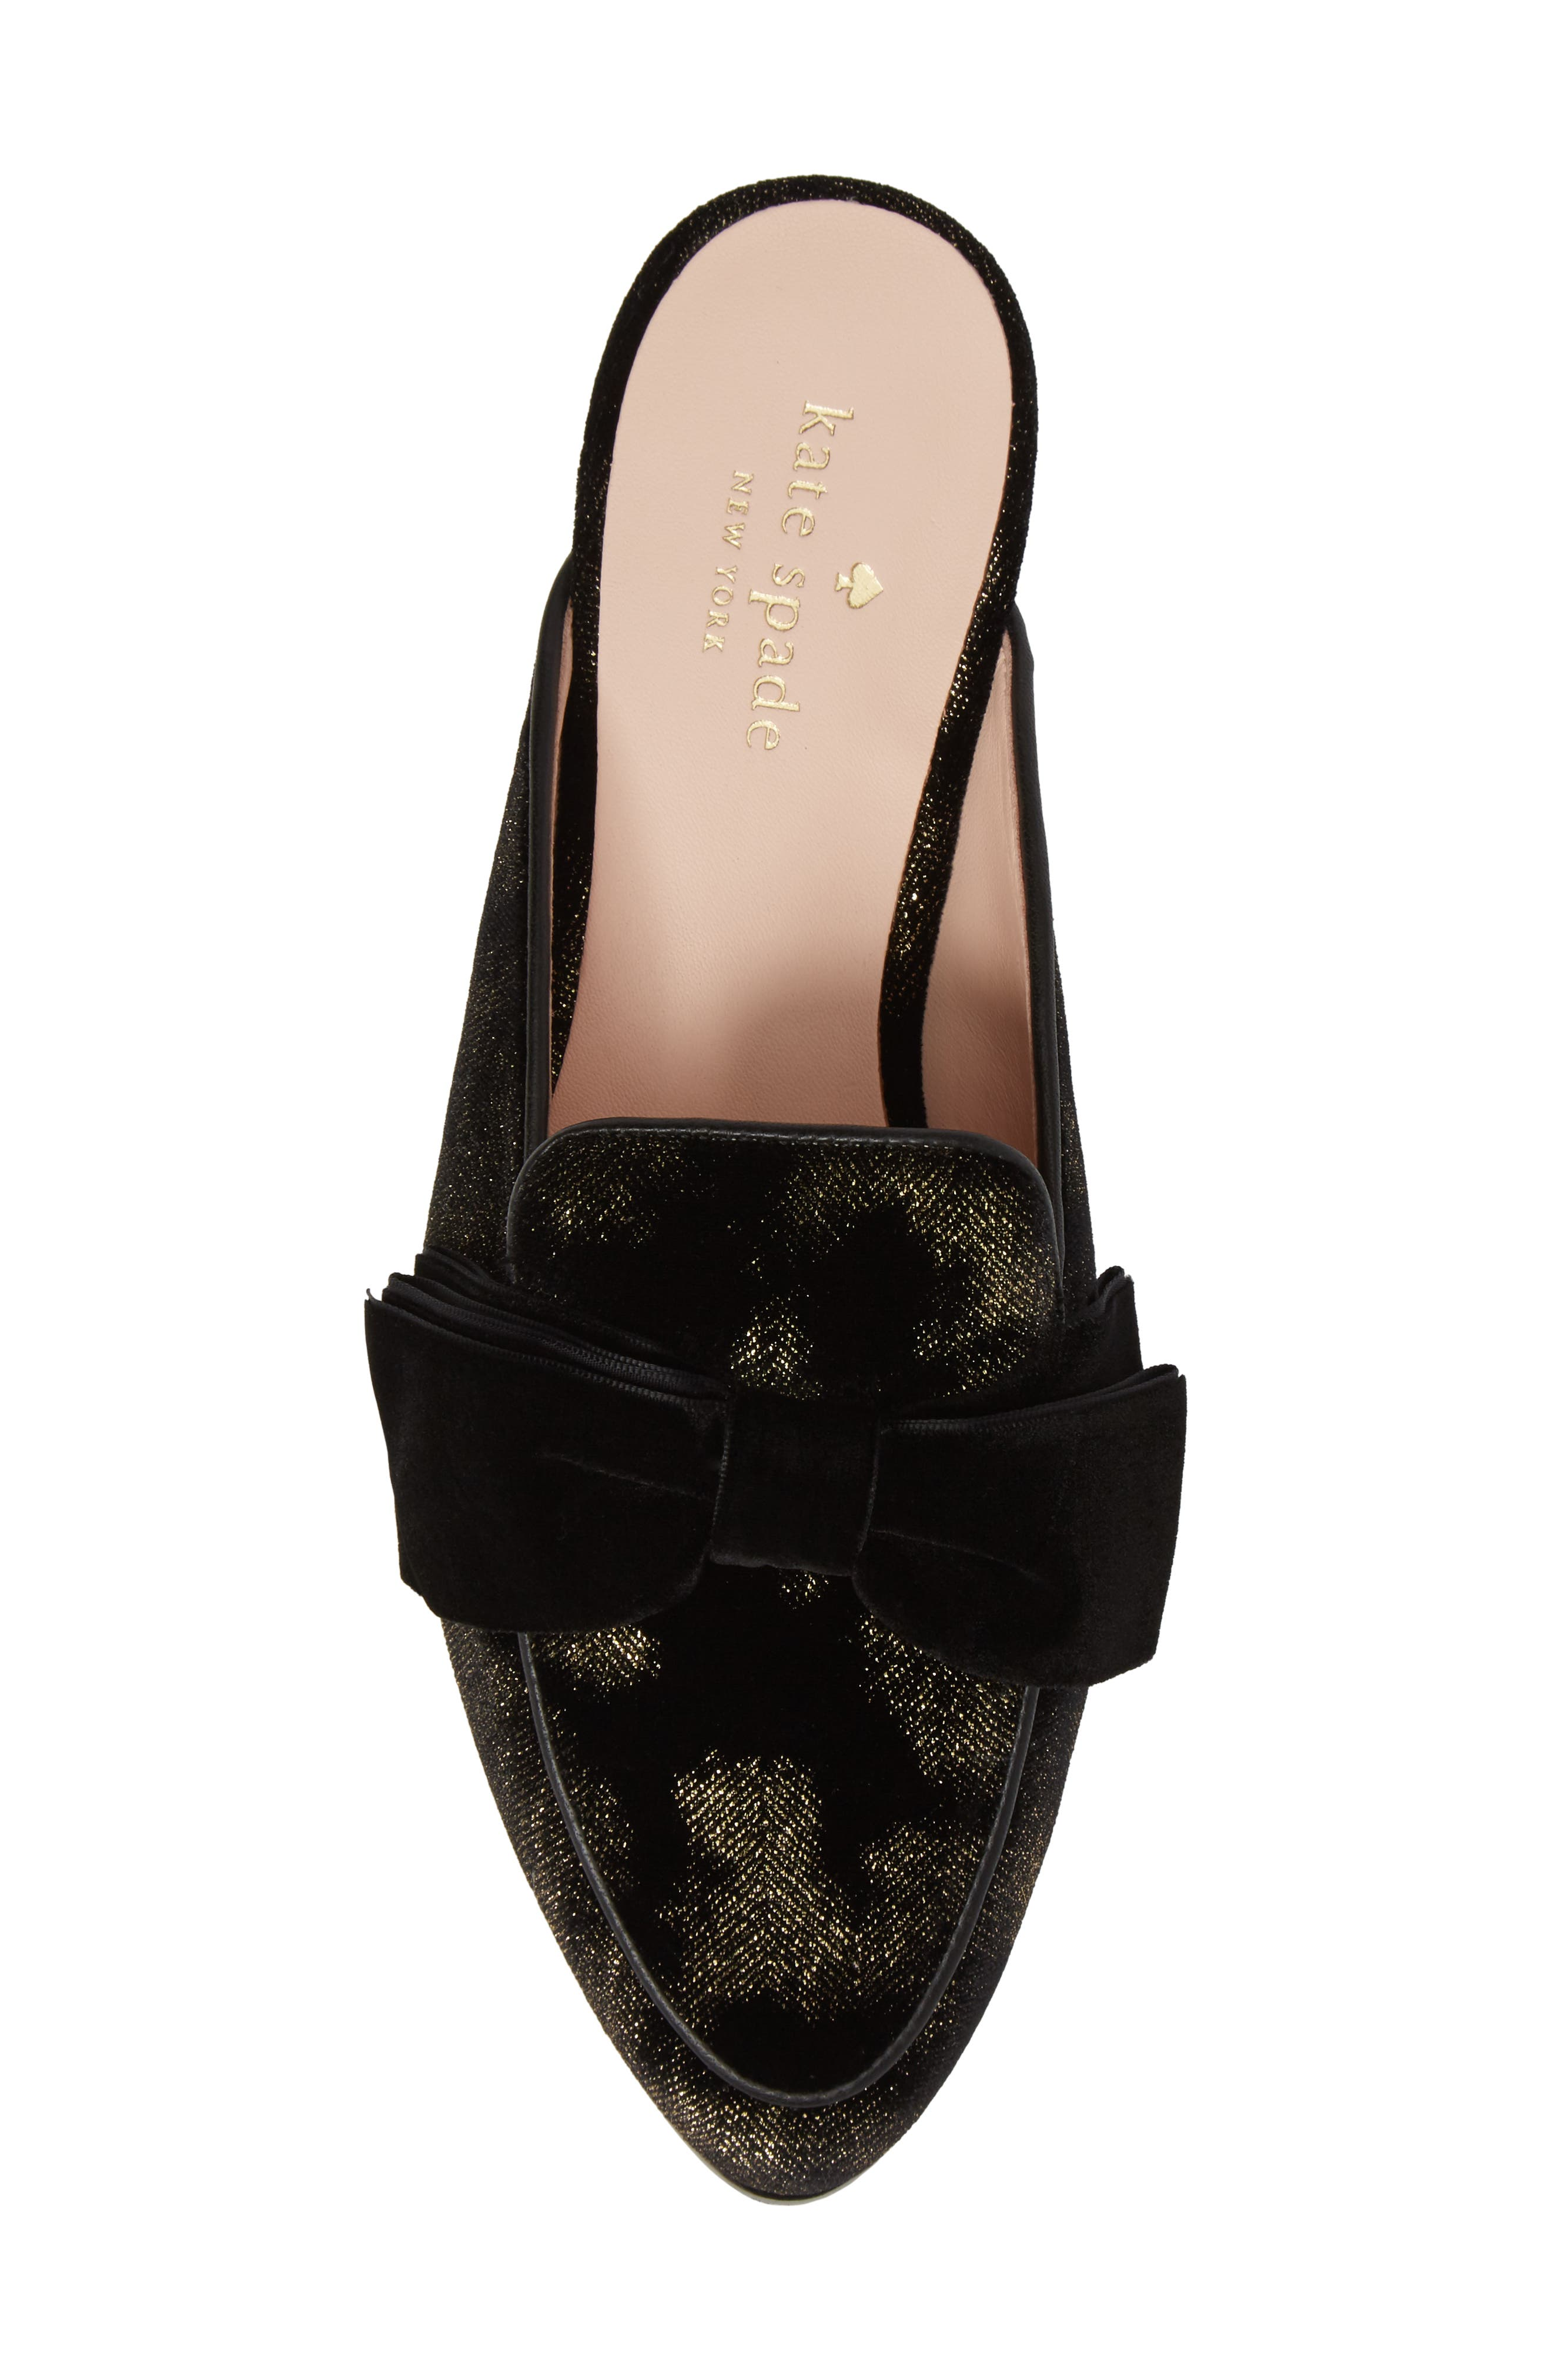 carnegie bow mule,                             Alternate thumbnail 5, color,                             Black Velvet